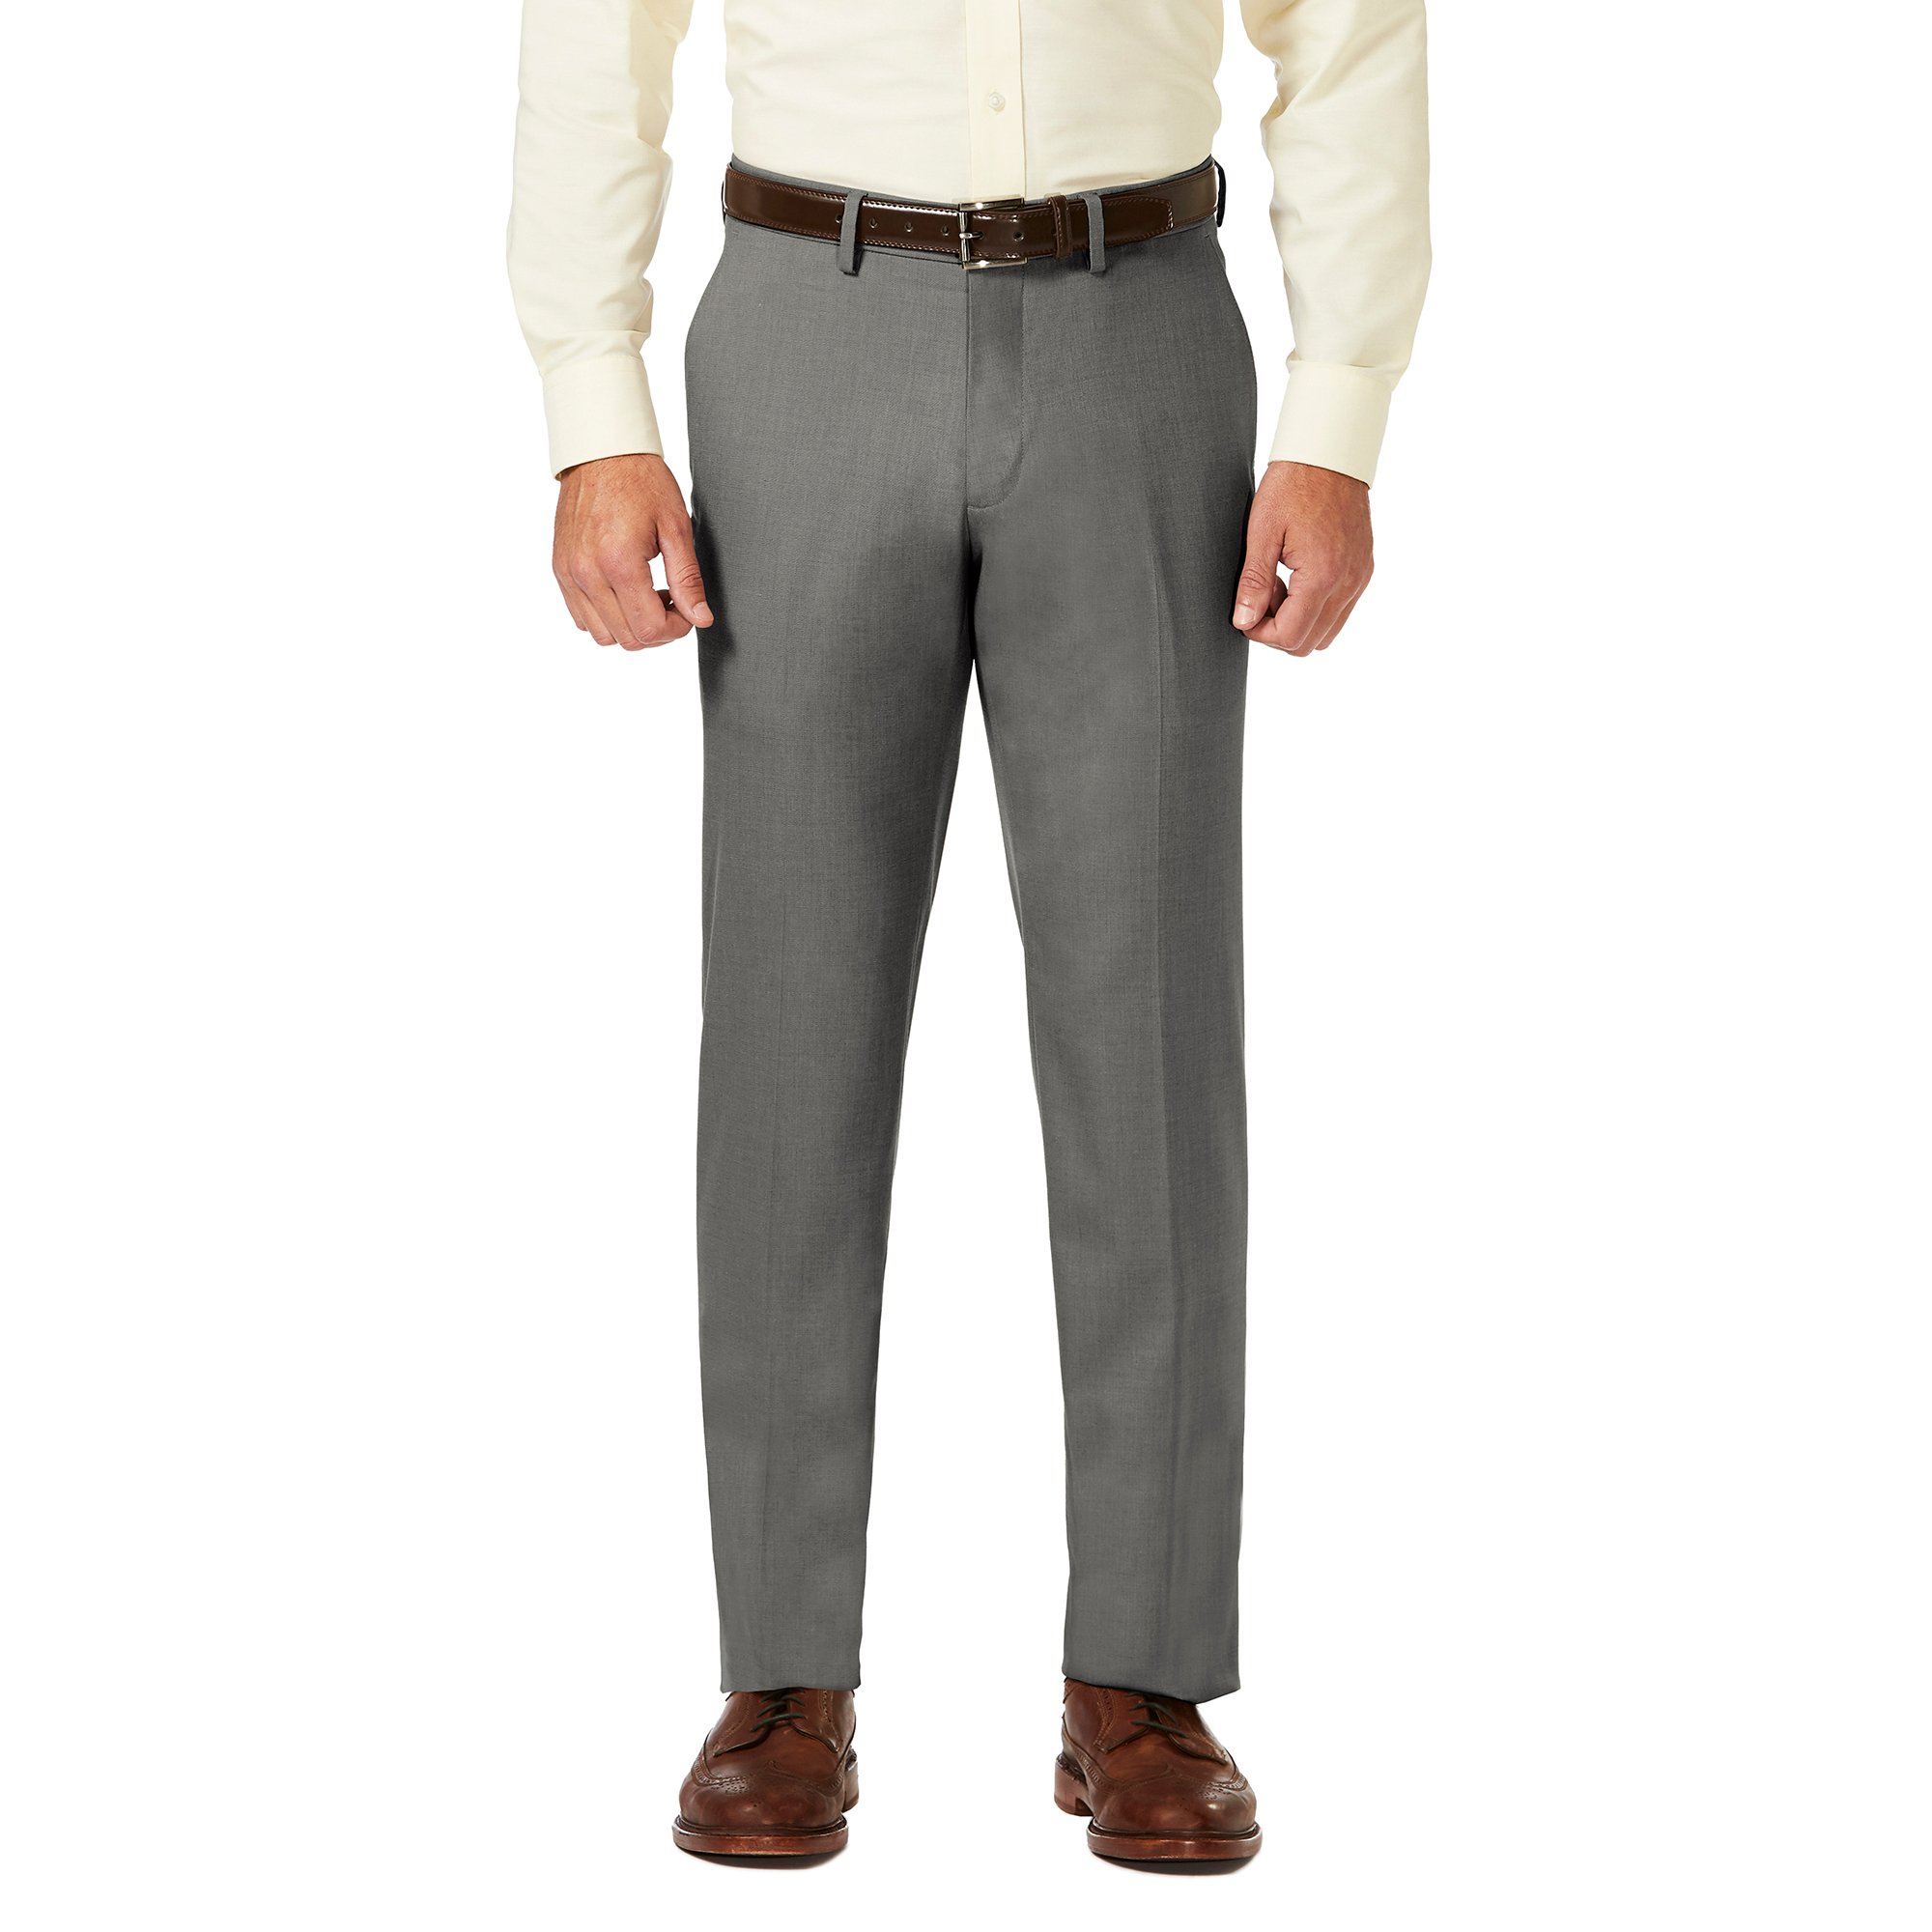 Mens Classic Pleated Fit Chino Pants-AN-34Wx34L